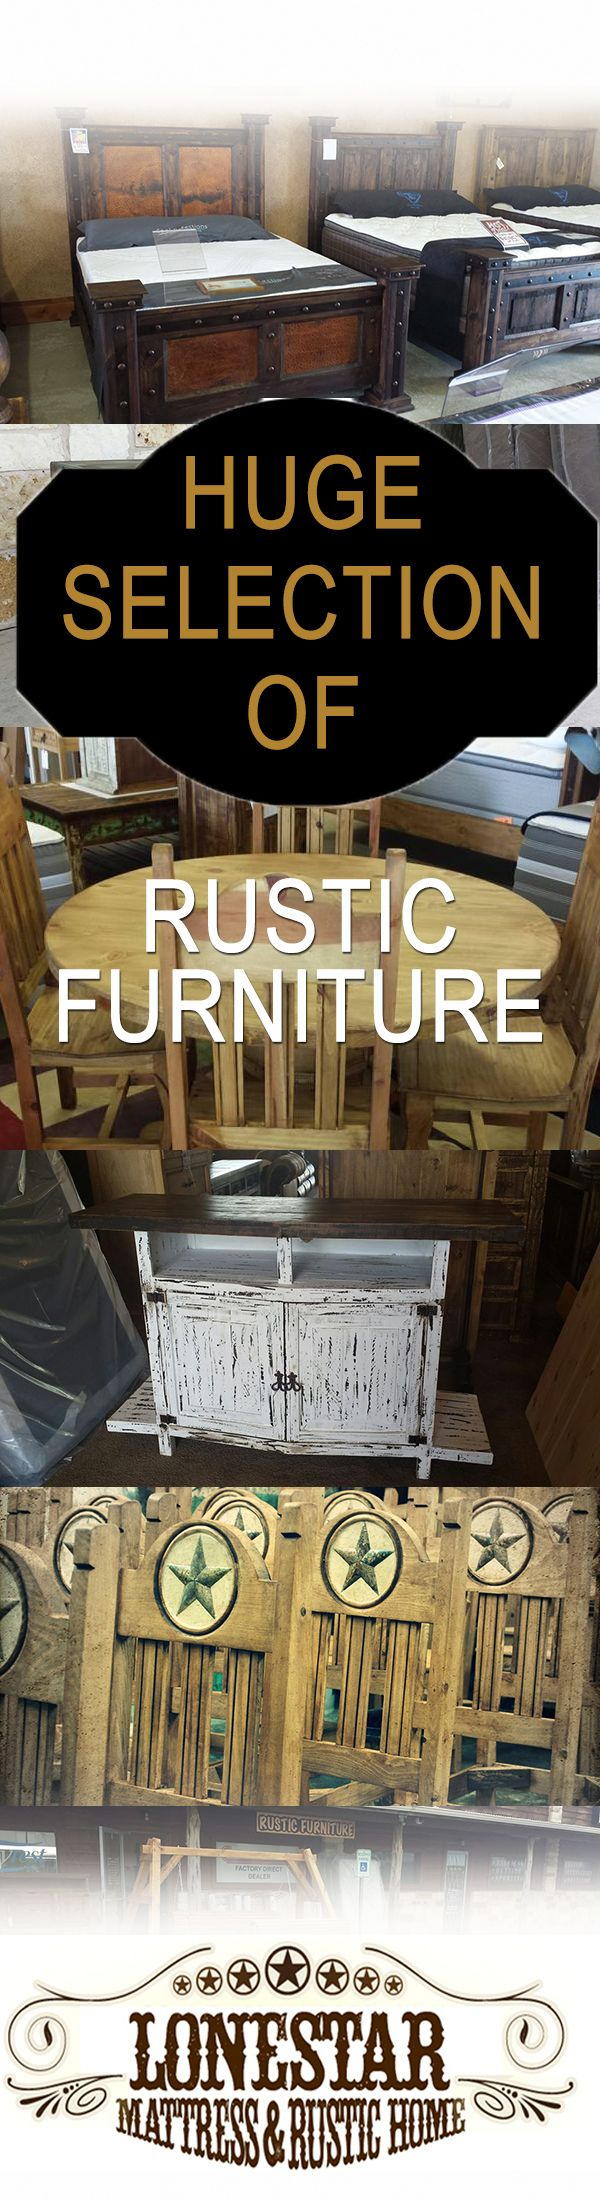 We Have A HUGE Selection Of Rustic Furniture. Lonestar Mattress Wholesale  Has Everything You Need To Get Your Home In Order. Youu0027ll Never Pay Retail  Pricing ...